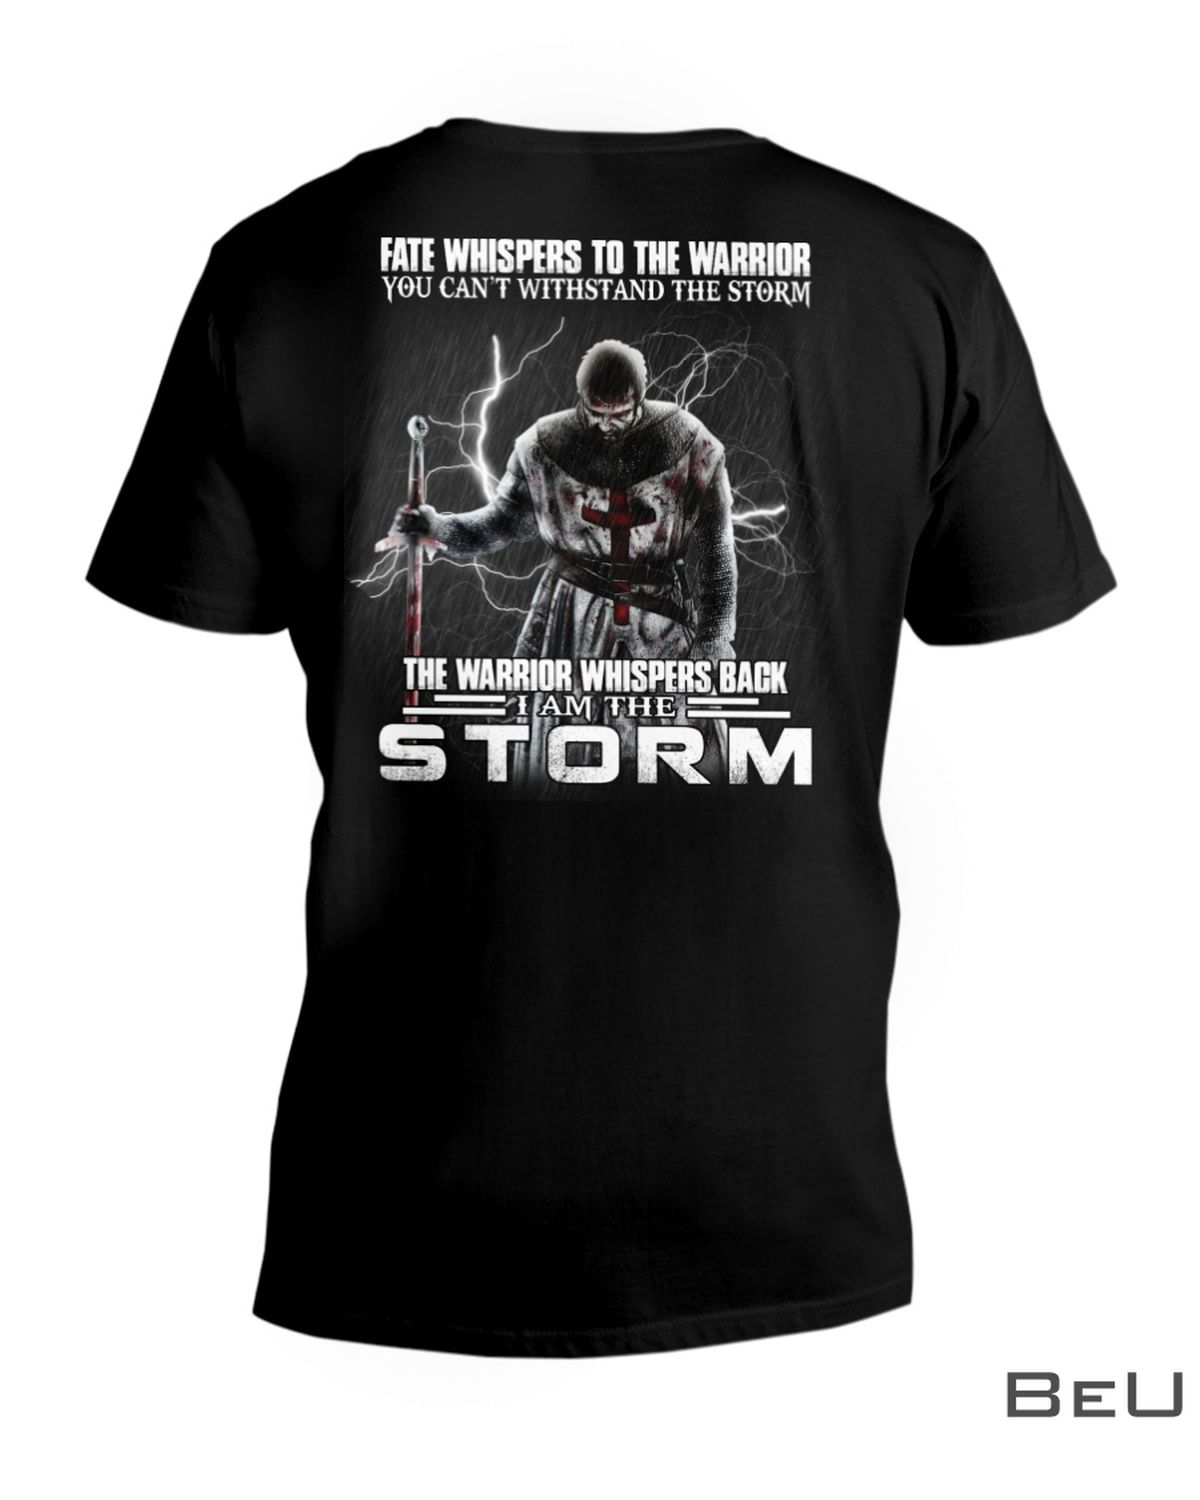 Fate Whispers To The Warrior You Can't Withstand The Storm Shirtx